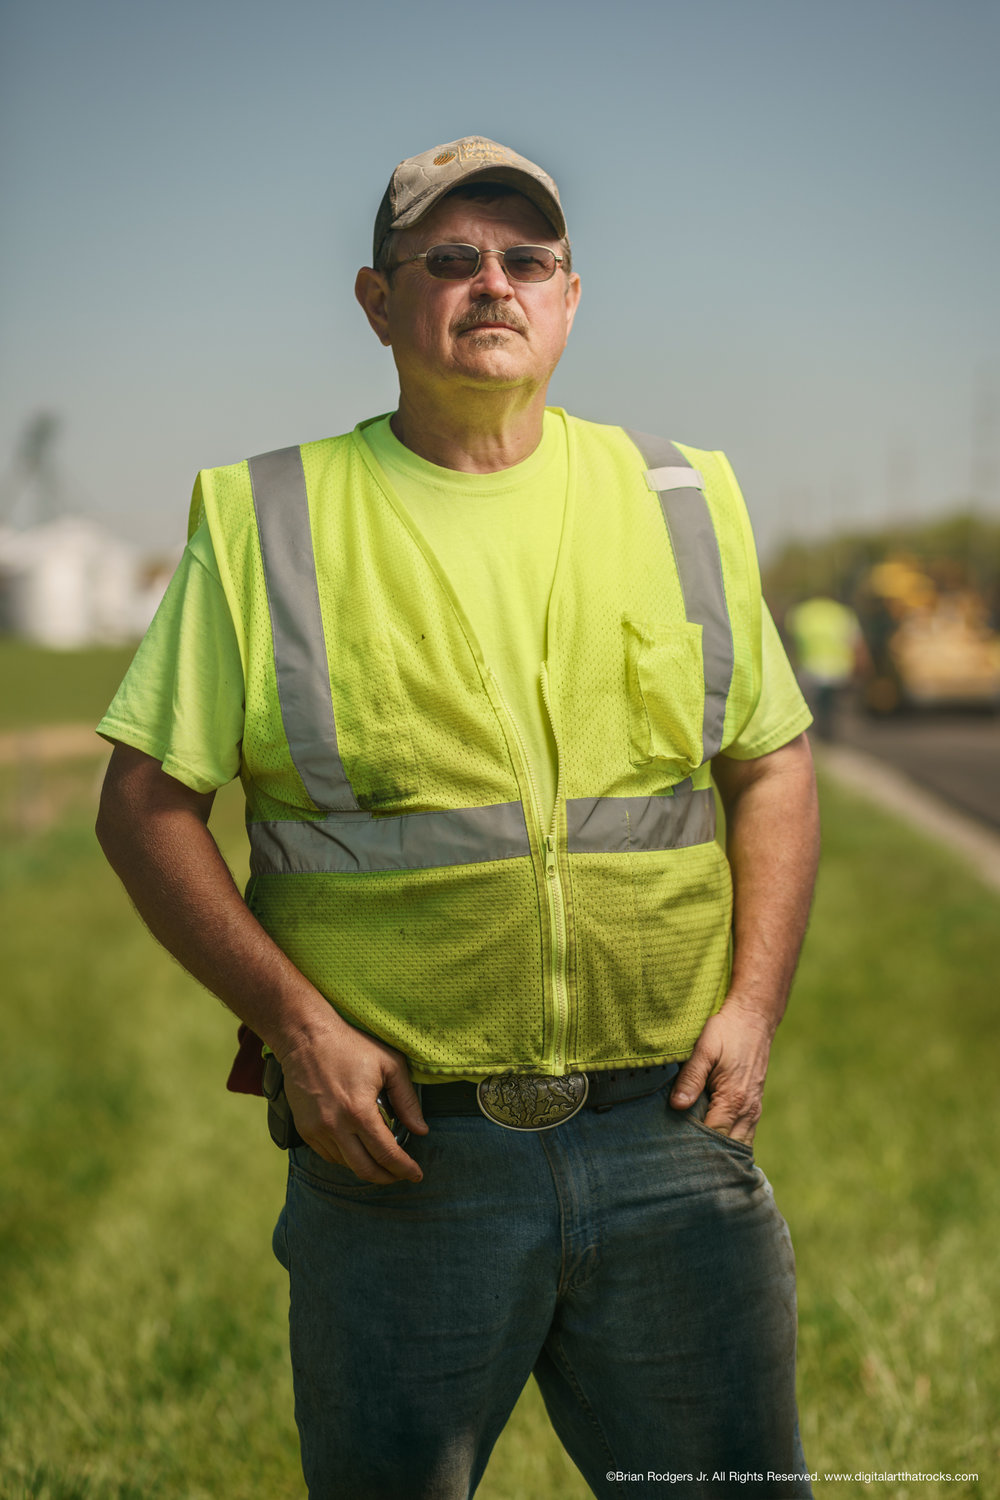 south-bend-commercial-portraits-asphalt-construction-worker-brian-rodgers-jr-digital-art-that-rocks